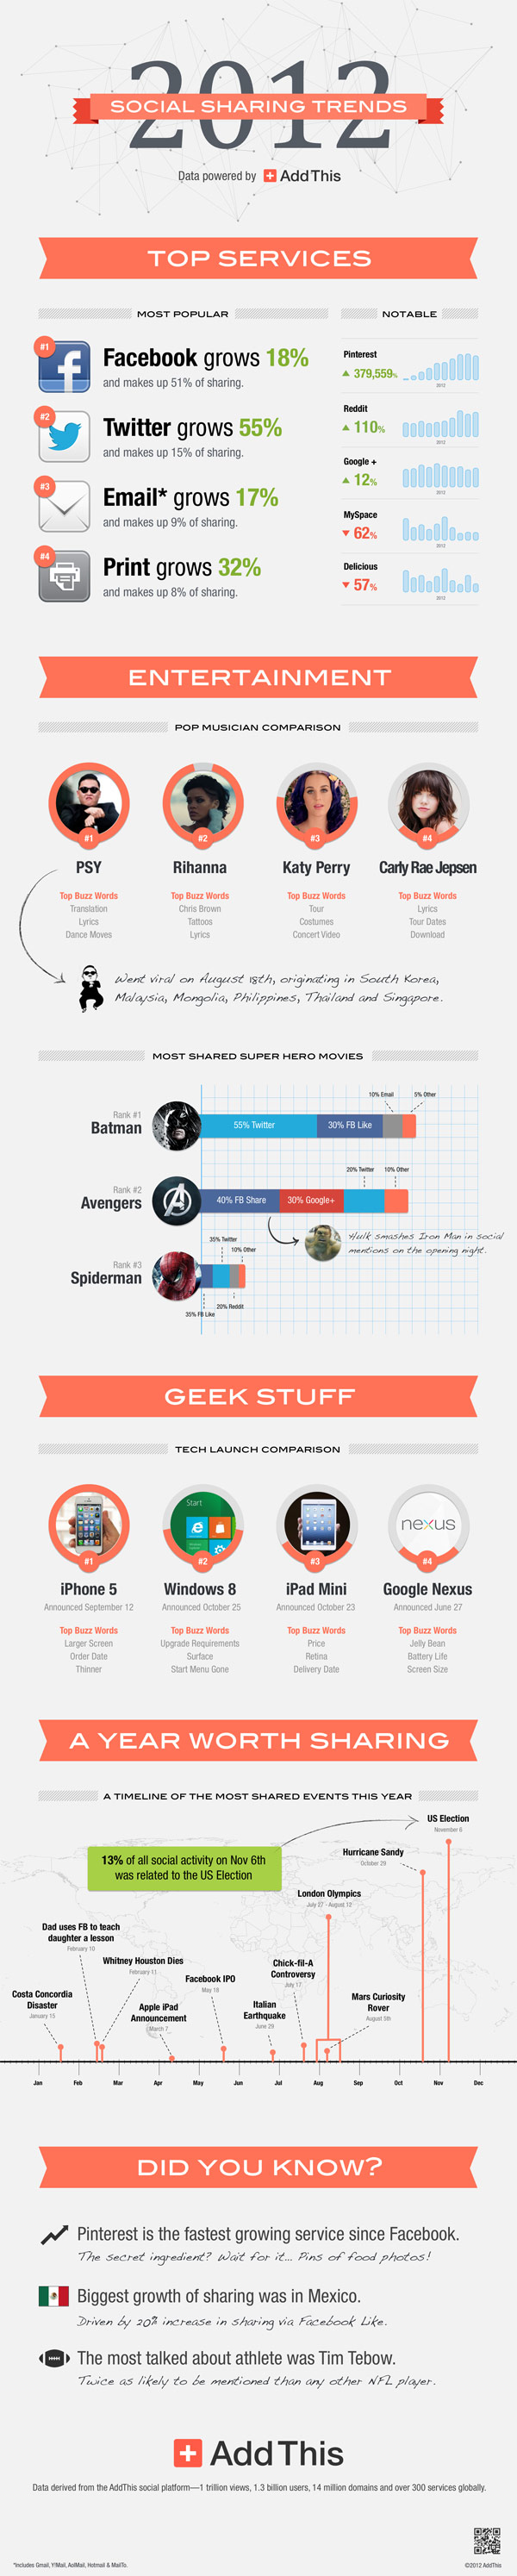 Social Media Highlights 2012-Infographic